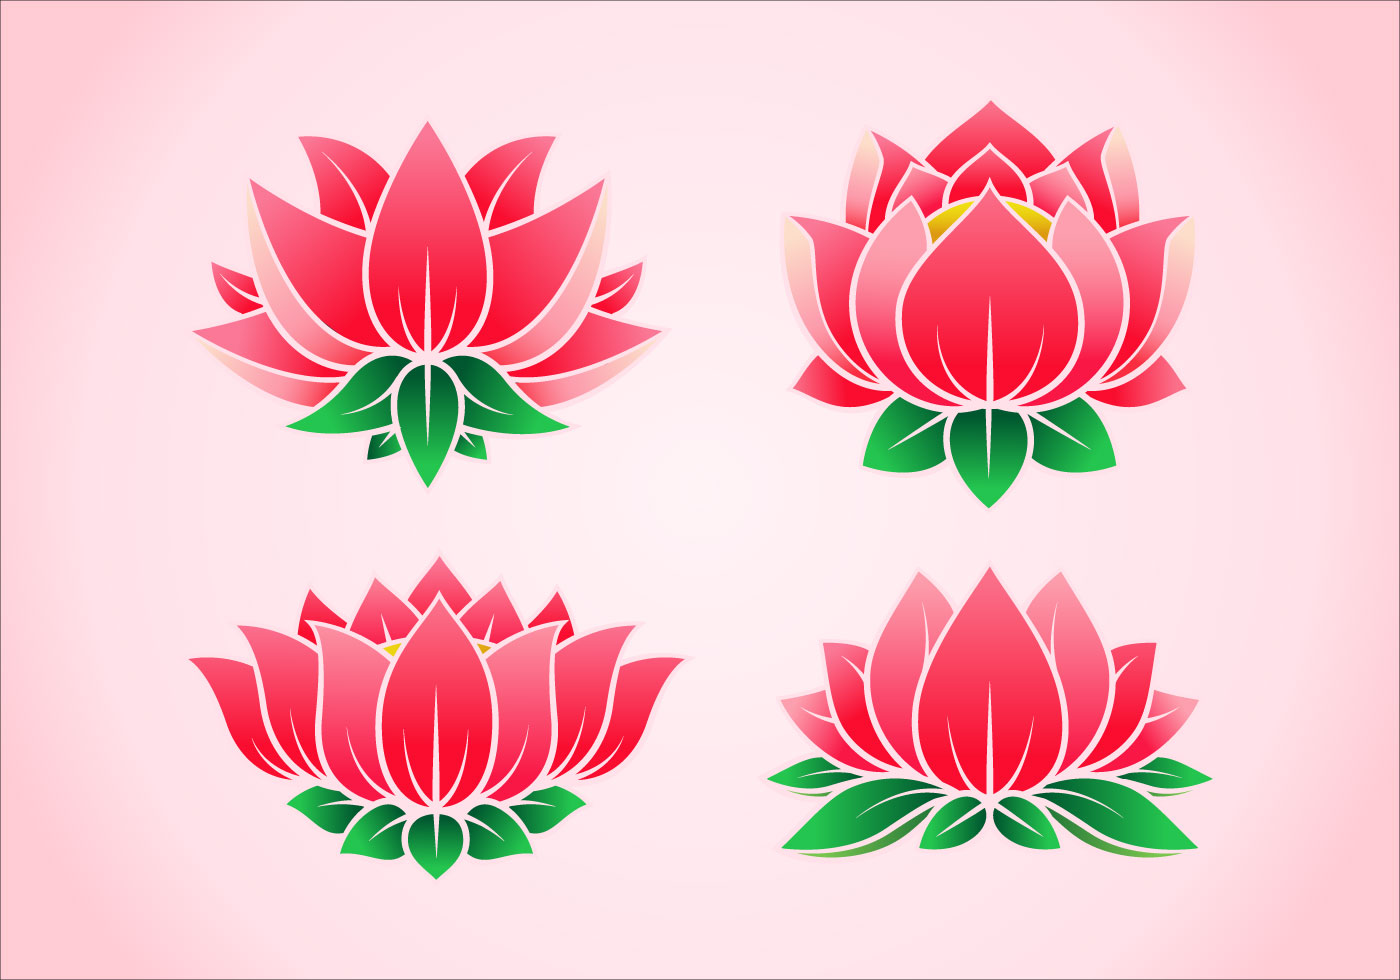 Pink Lotus Flower Vectors Download Free Vector Art Stock Graphics